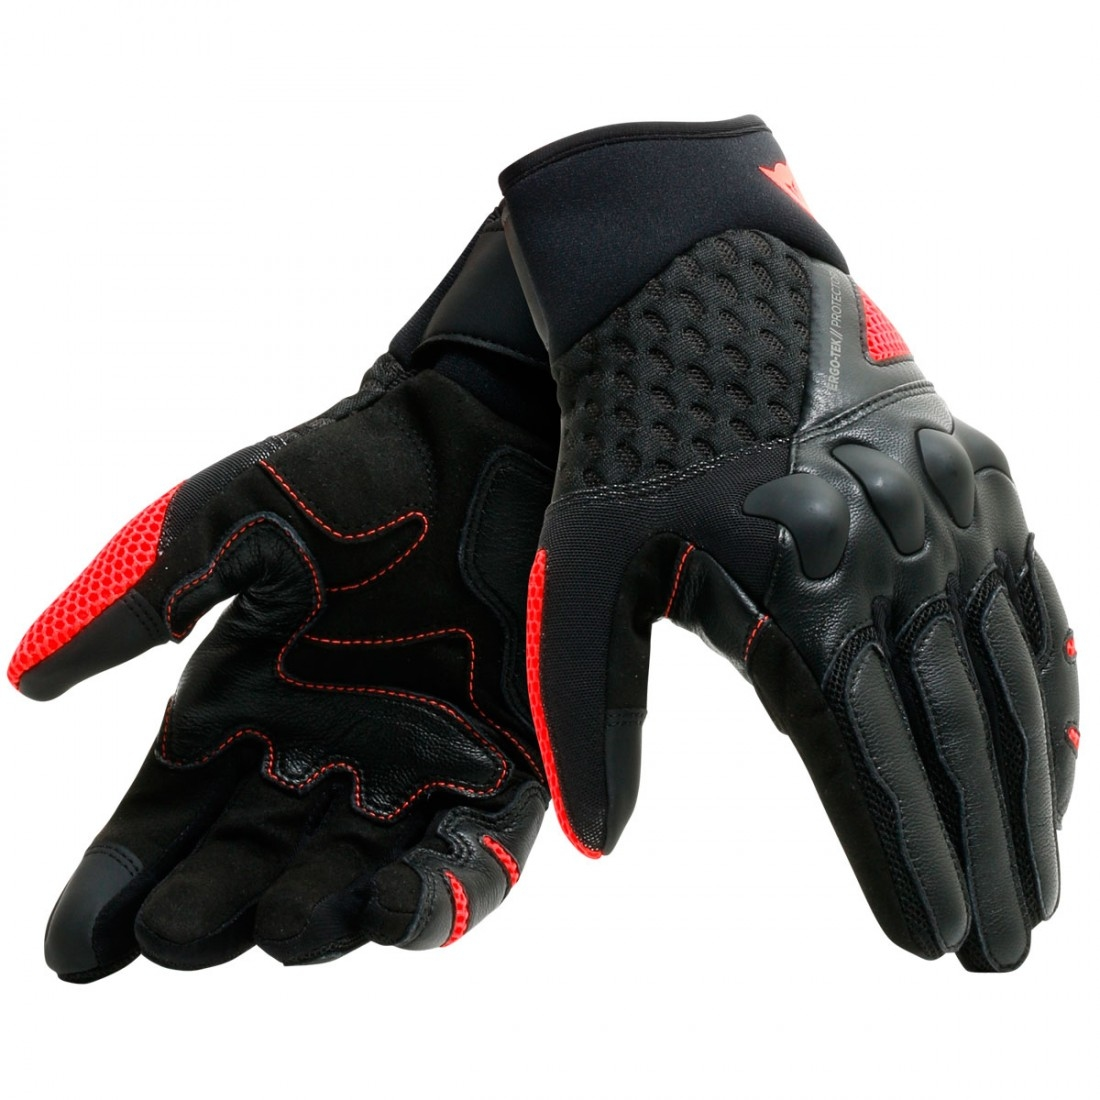 96f265b6f6f Guantes DAINESE X-Moto Black / Fluo-Red · Motocard